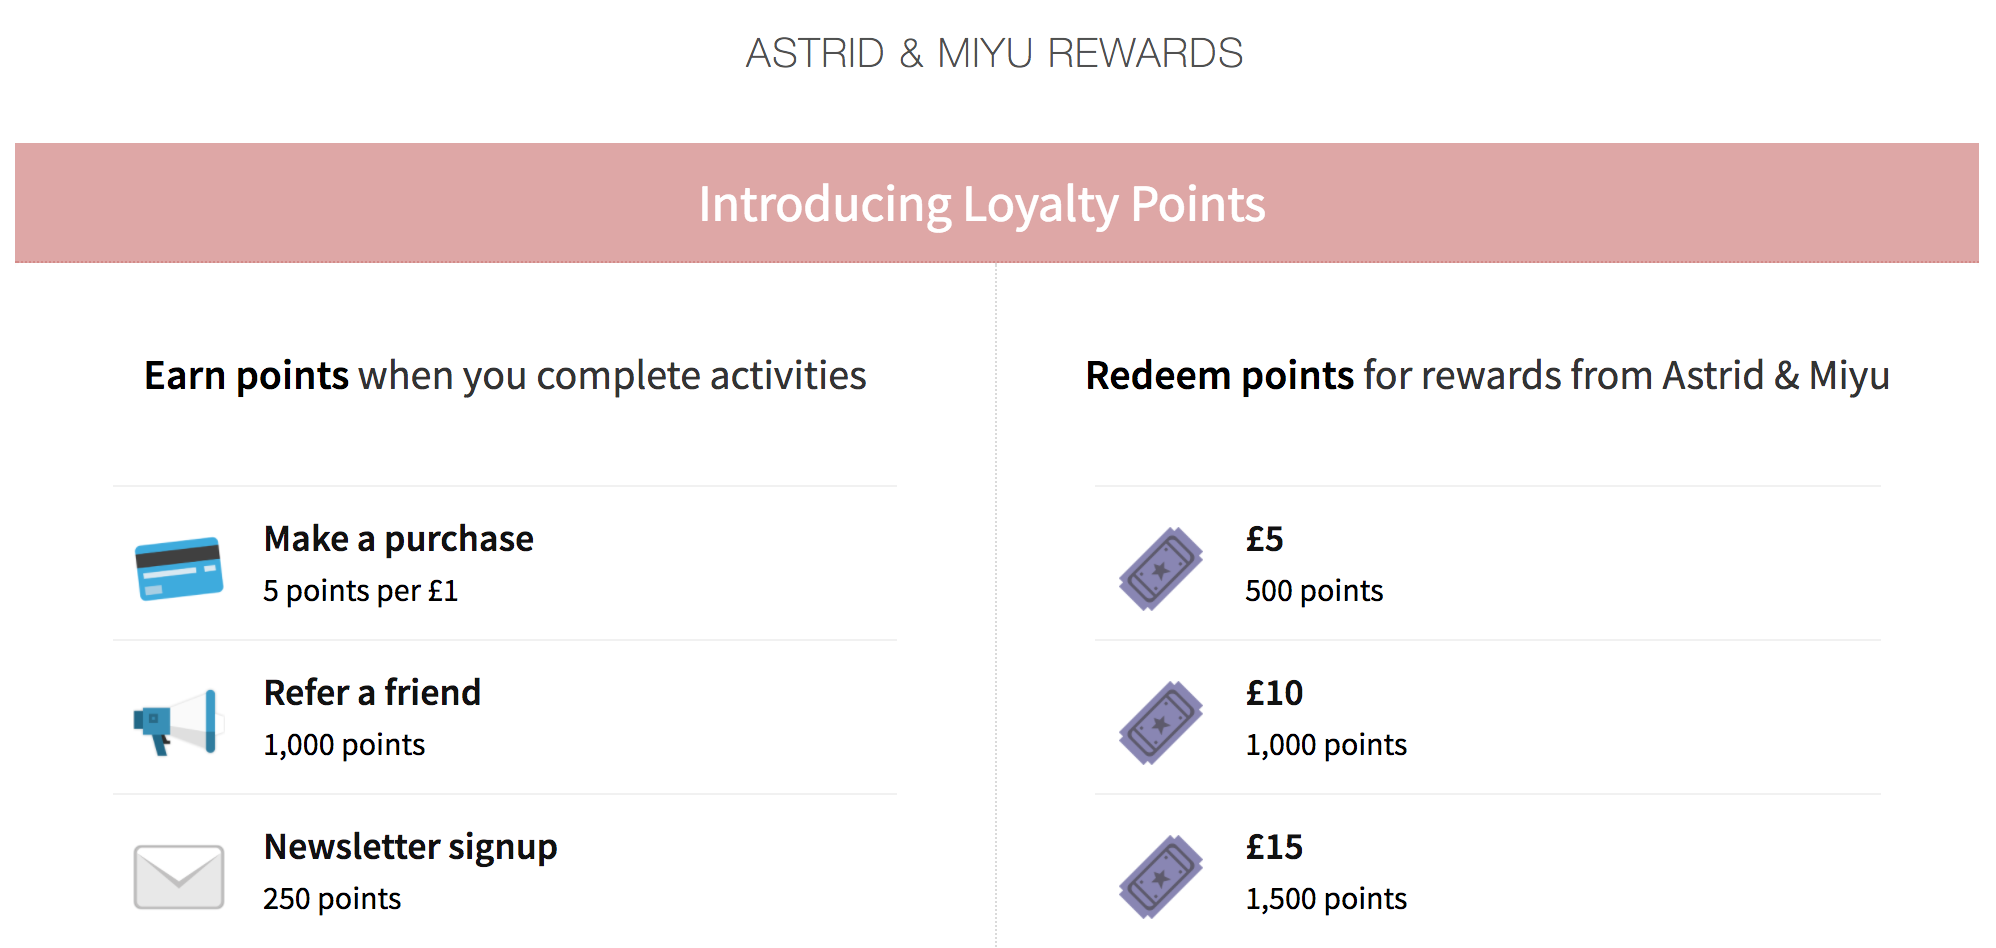 The activities Astrid & Miyu rewards with redeemable points